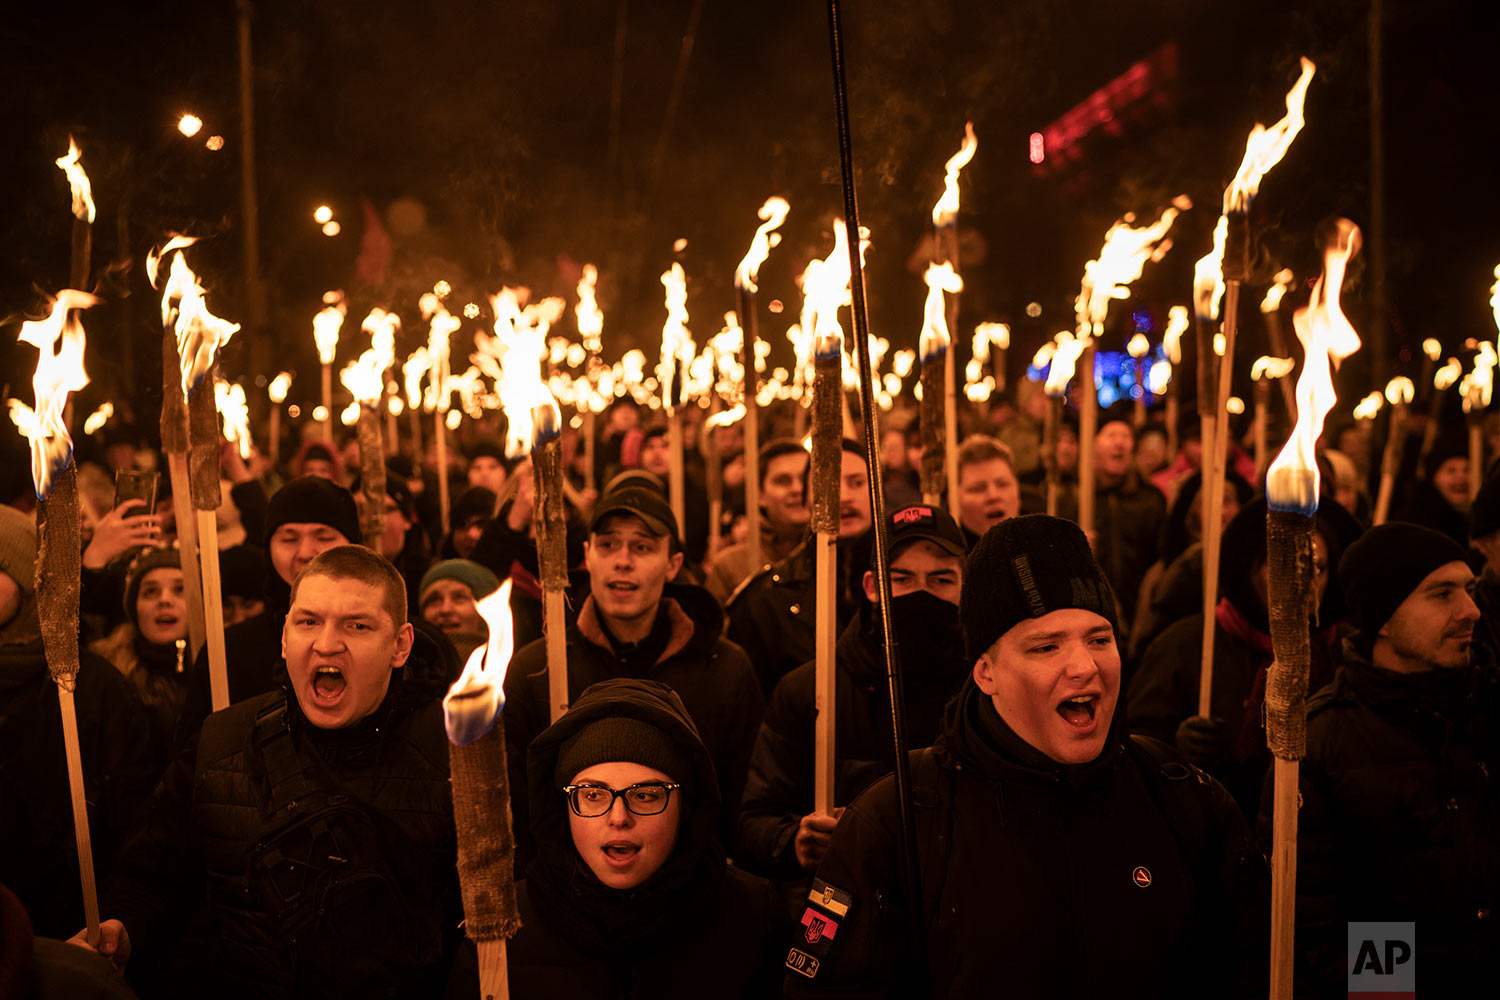 Nationalist carry torches during a rally to mark the birth anniversary of Stepan Bandera, founder of a rebel army that fought against the Soviet regime, in Kiev, Ukraine, Jan. 1, 2019. (AP Photo/Felipe Dana)